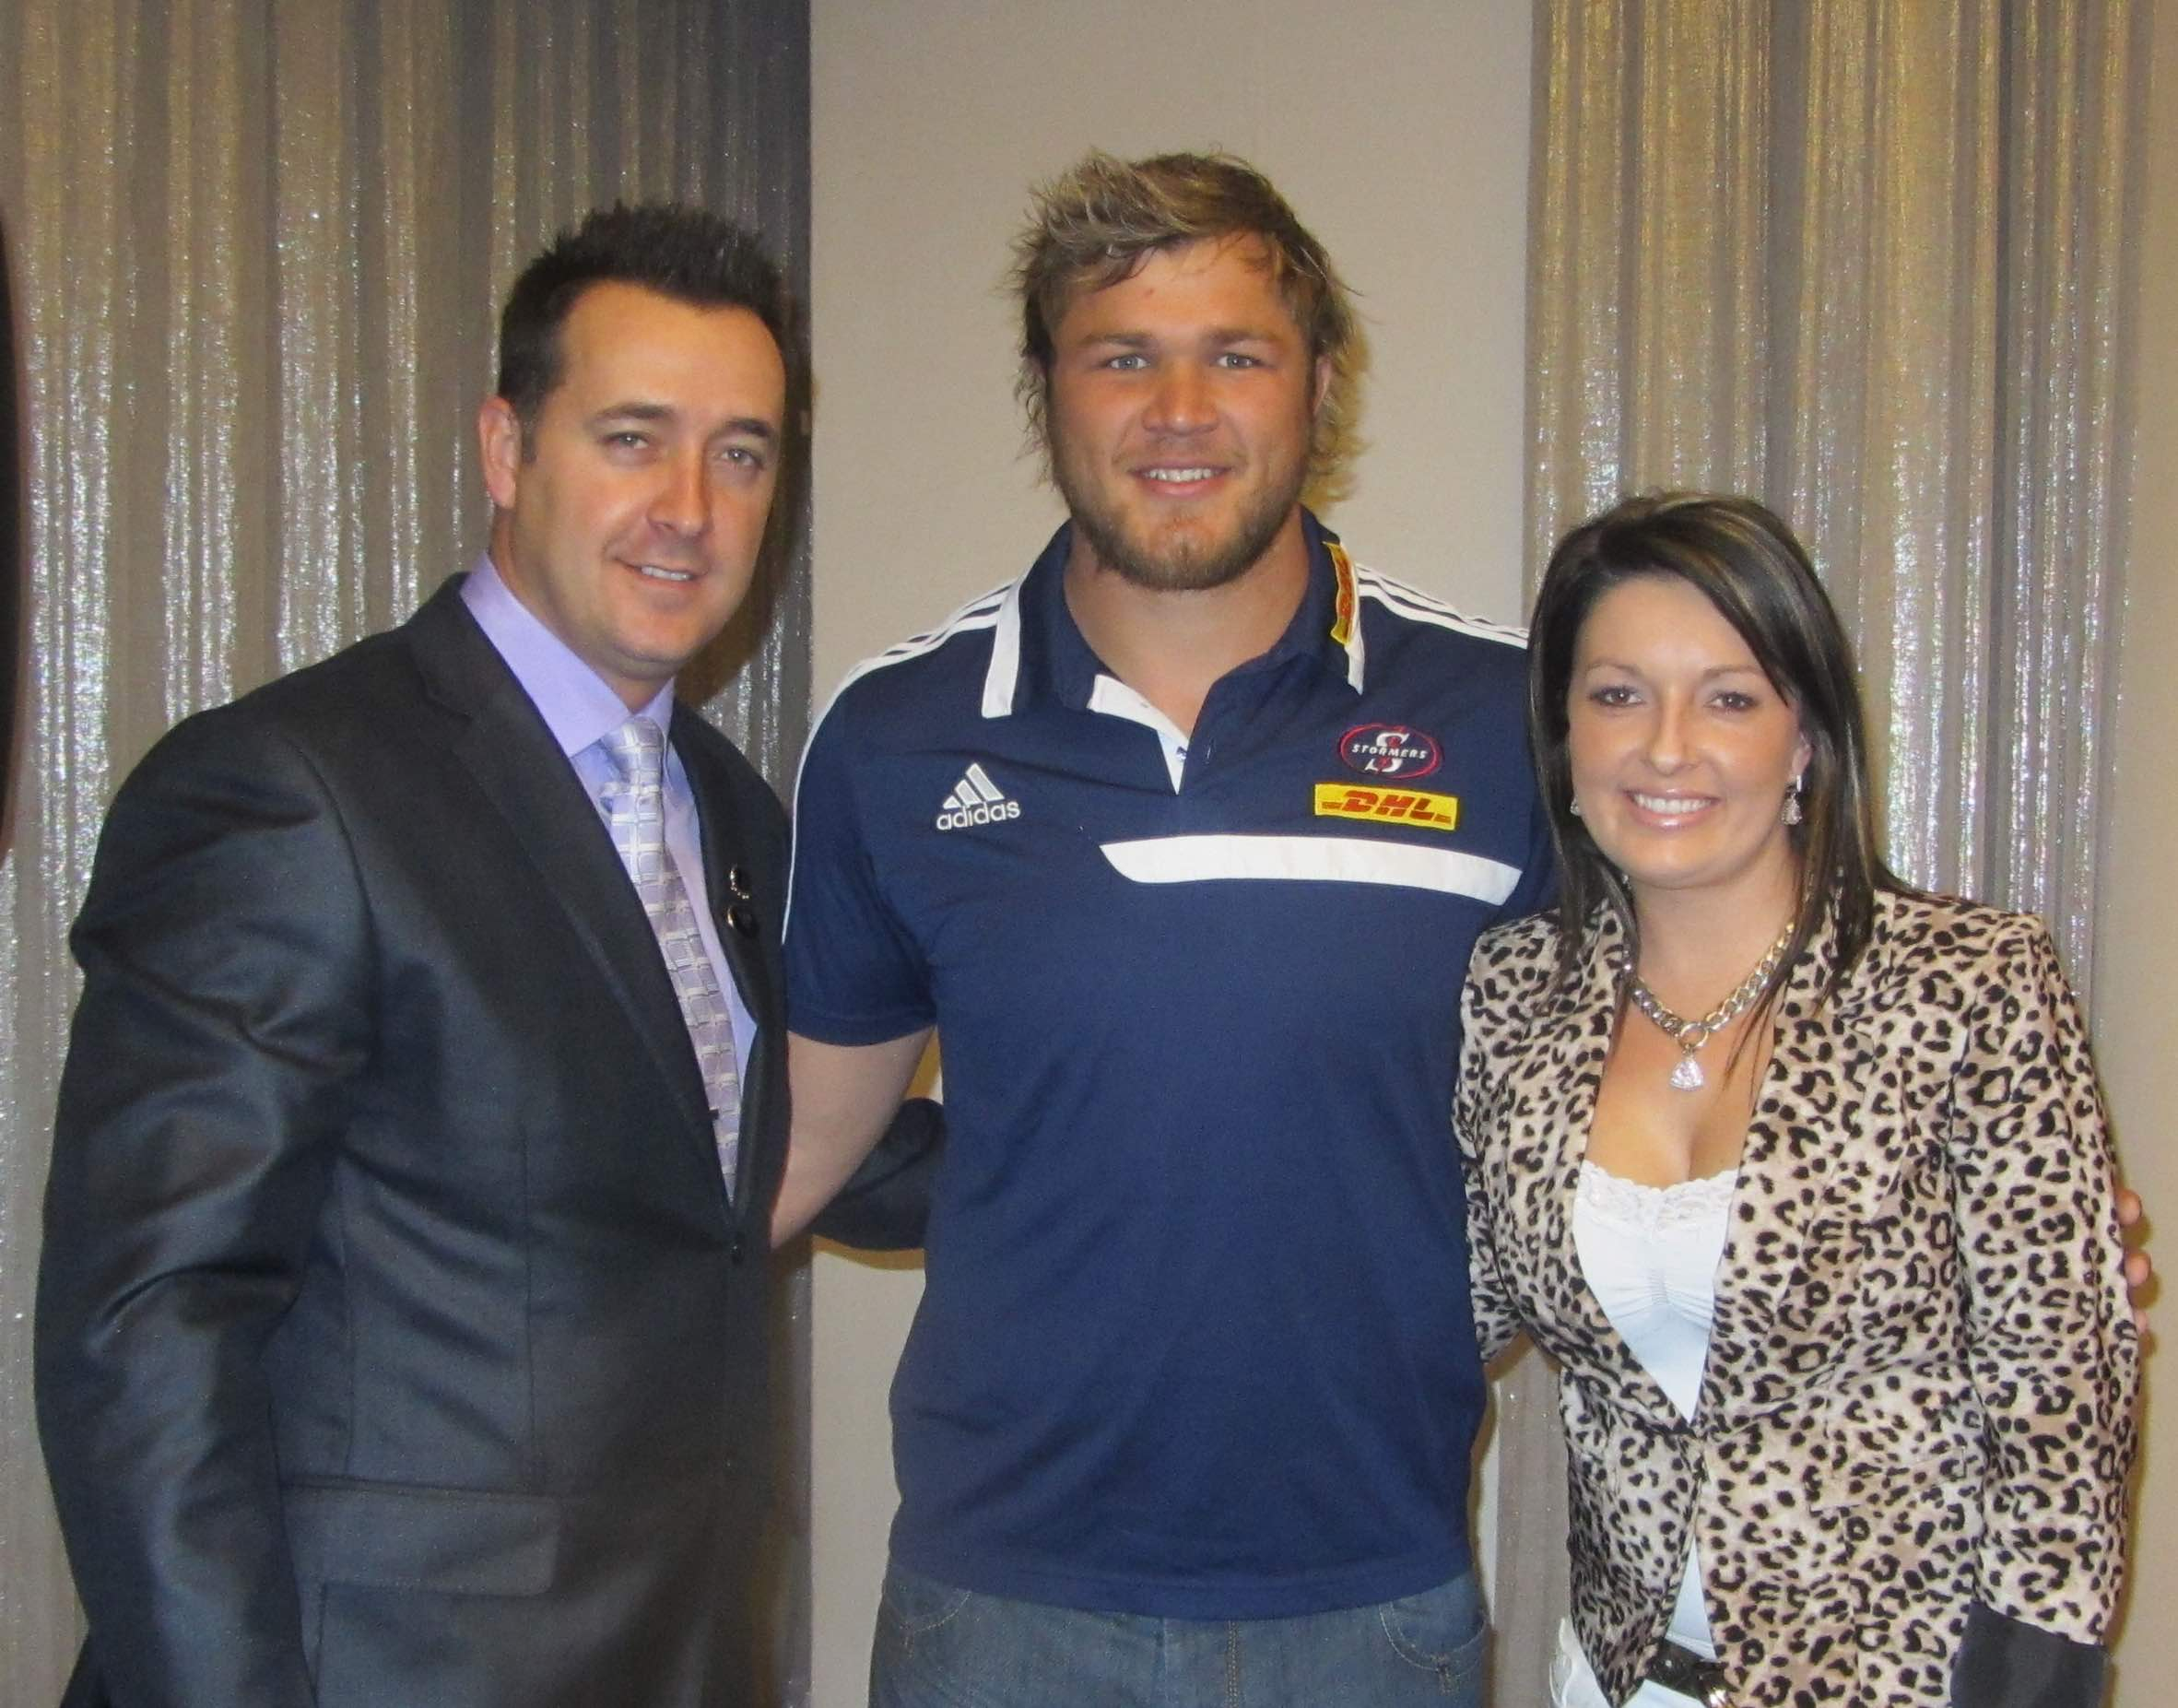 CCL Global Awards Mid Year 2013 with Duane Vermeulen